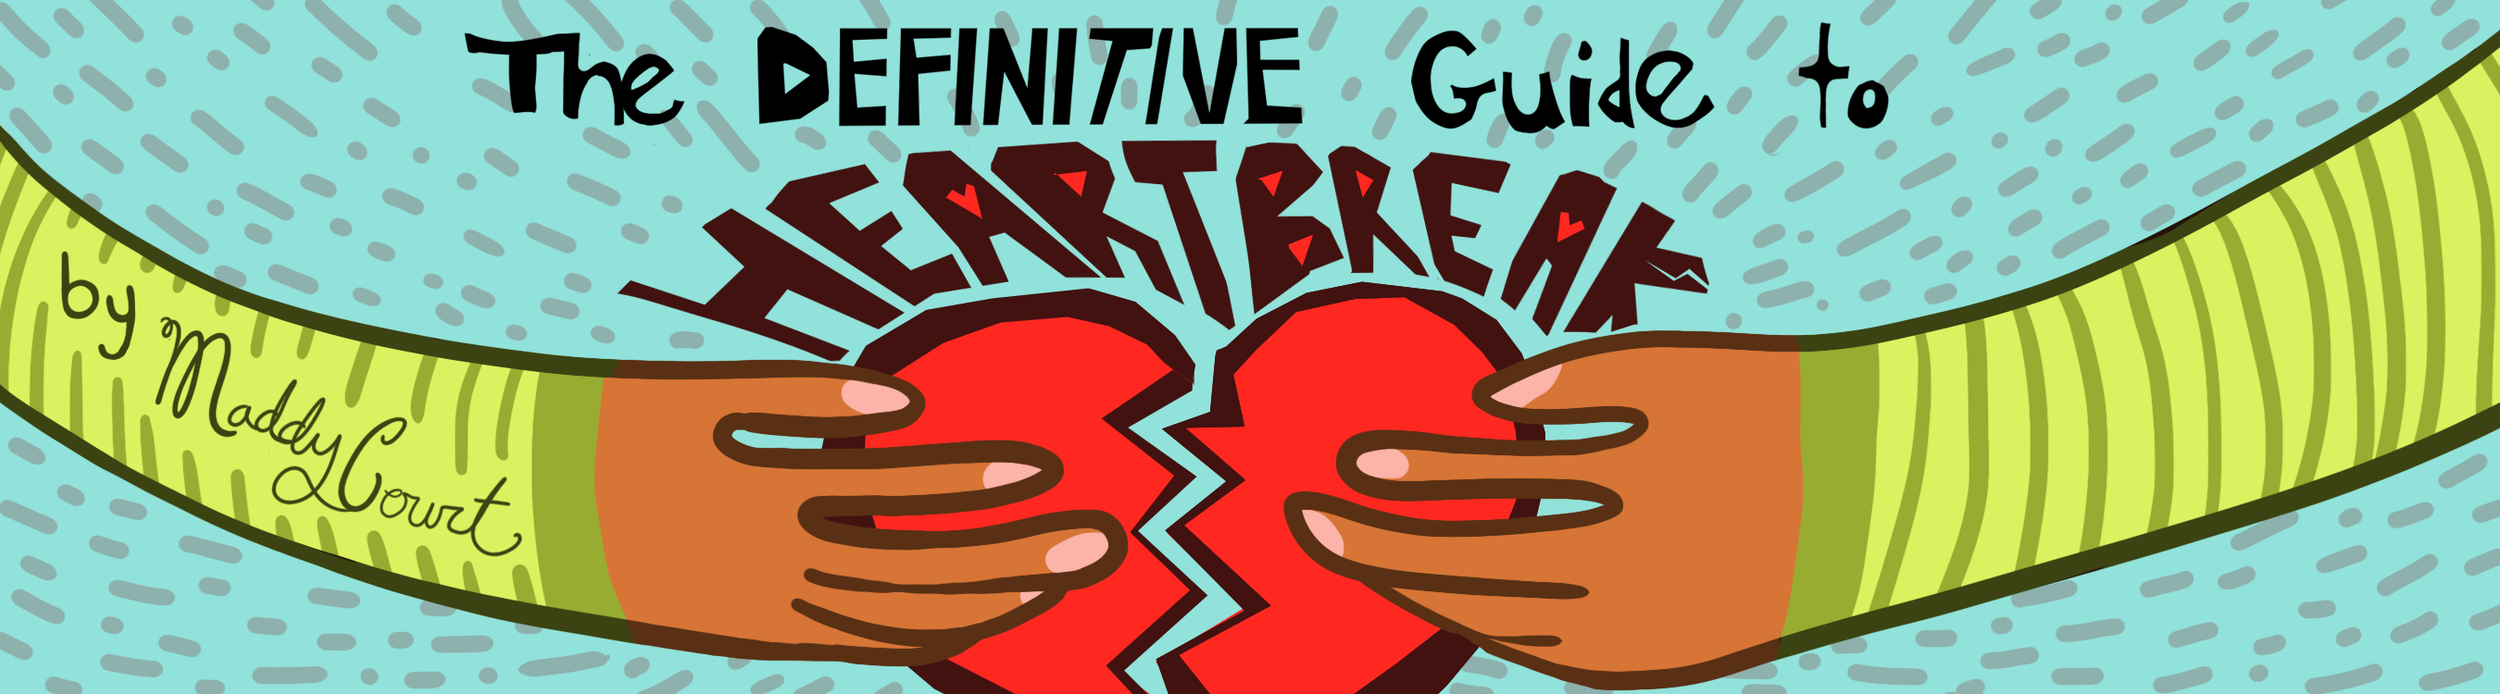 "Banner by Sid Champagne   [Image Description: Two brown hands each hold a half a centered broken heart beneath the words ""The Definitive Guide to Heartbreak""]"